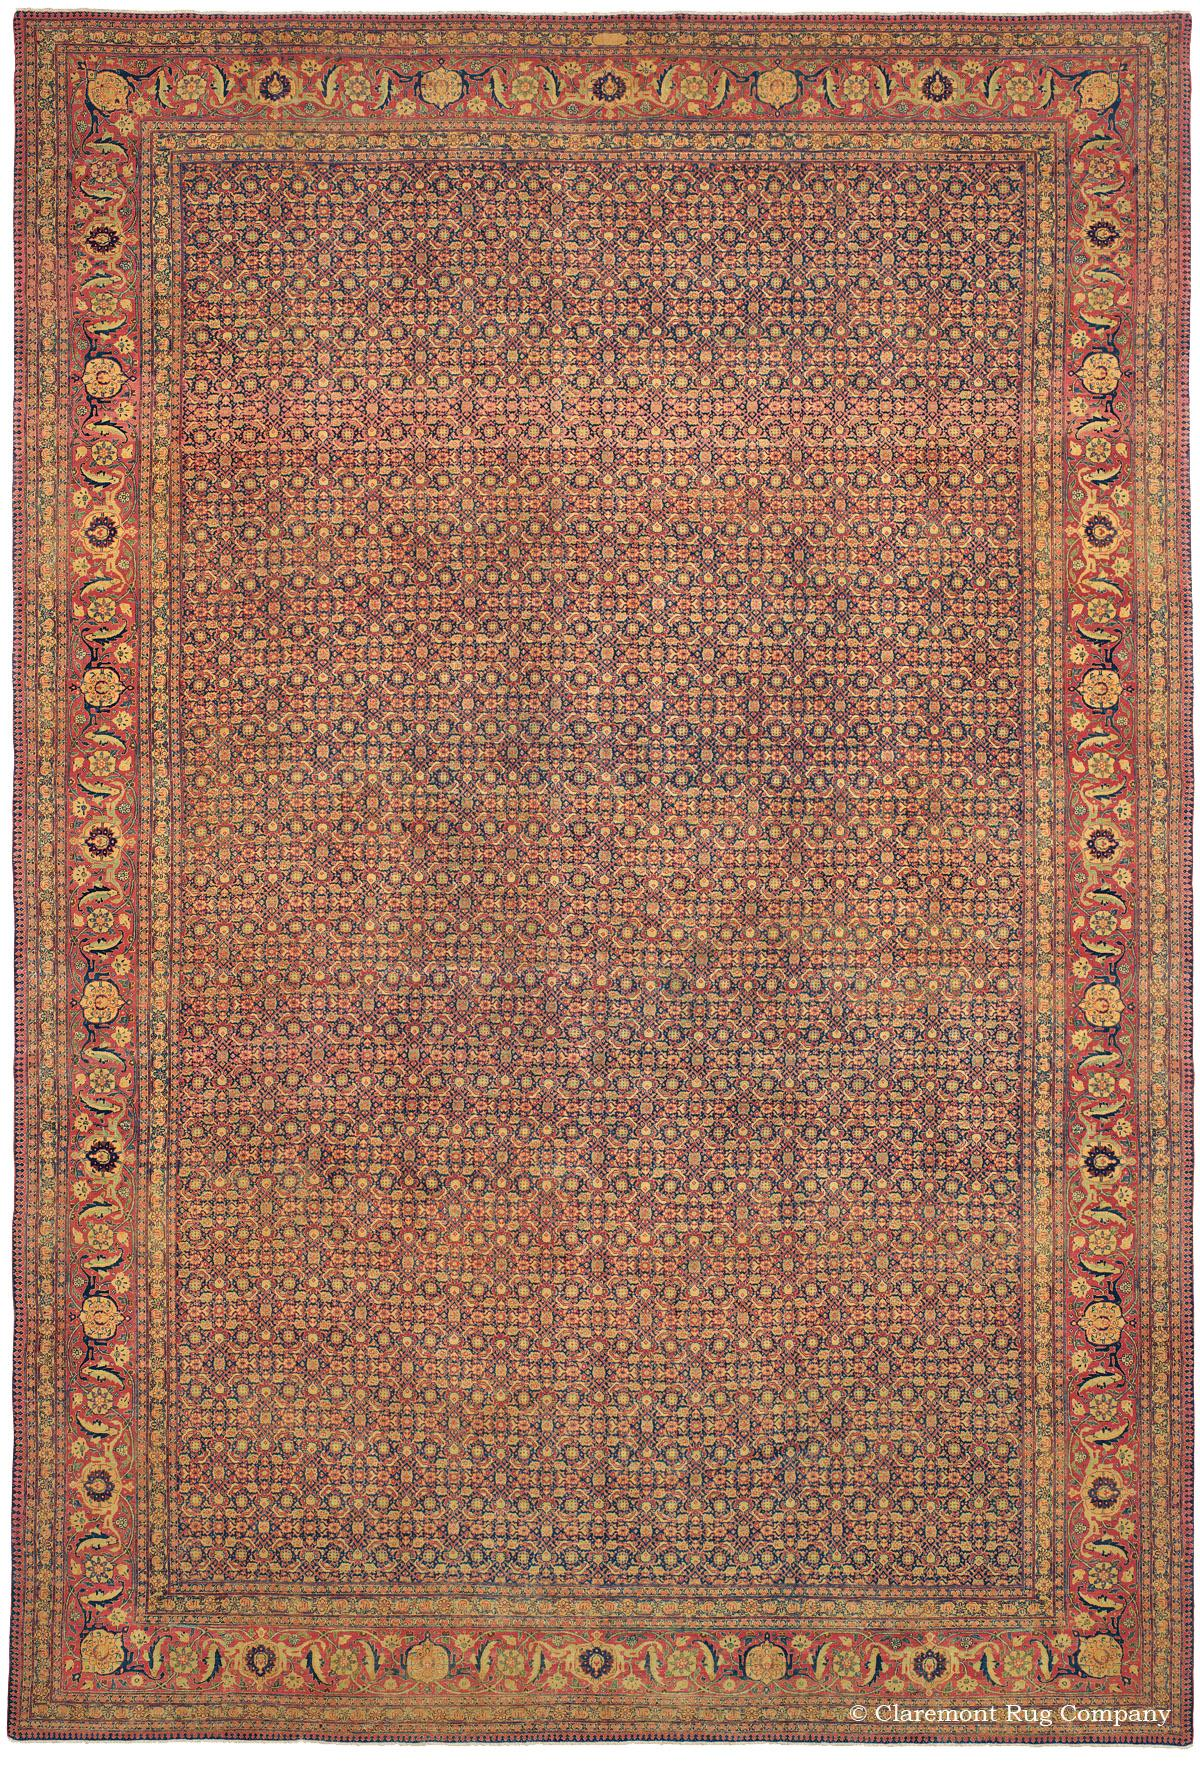 Antique rugs fine persian carpet gallery claremont rug for The rug company rugs